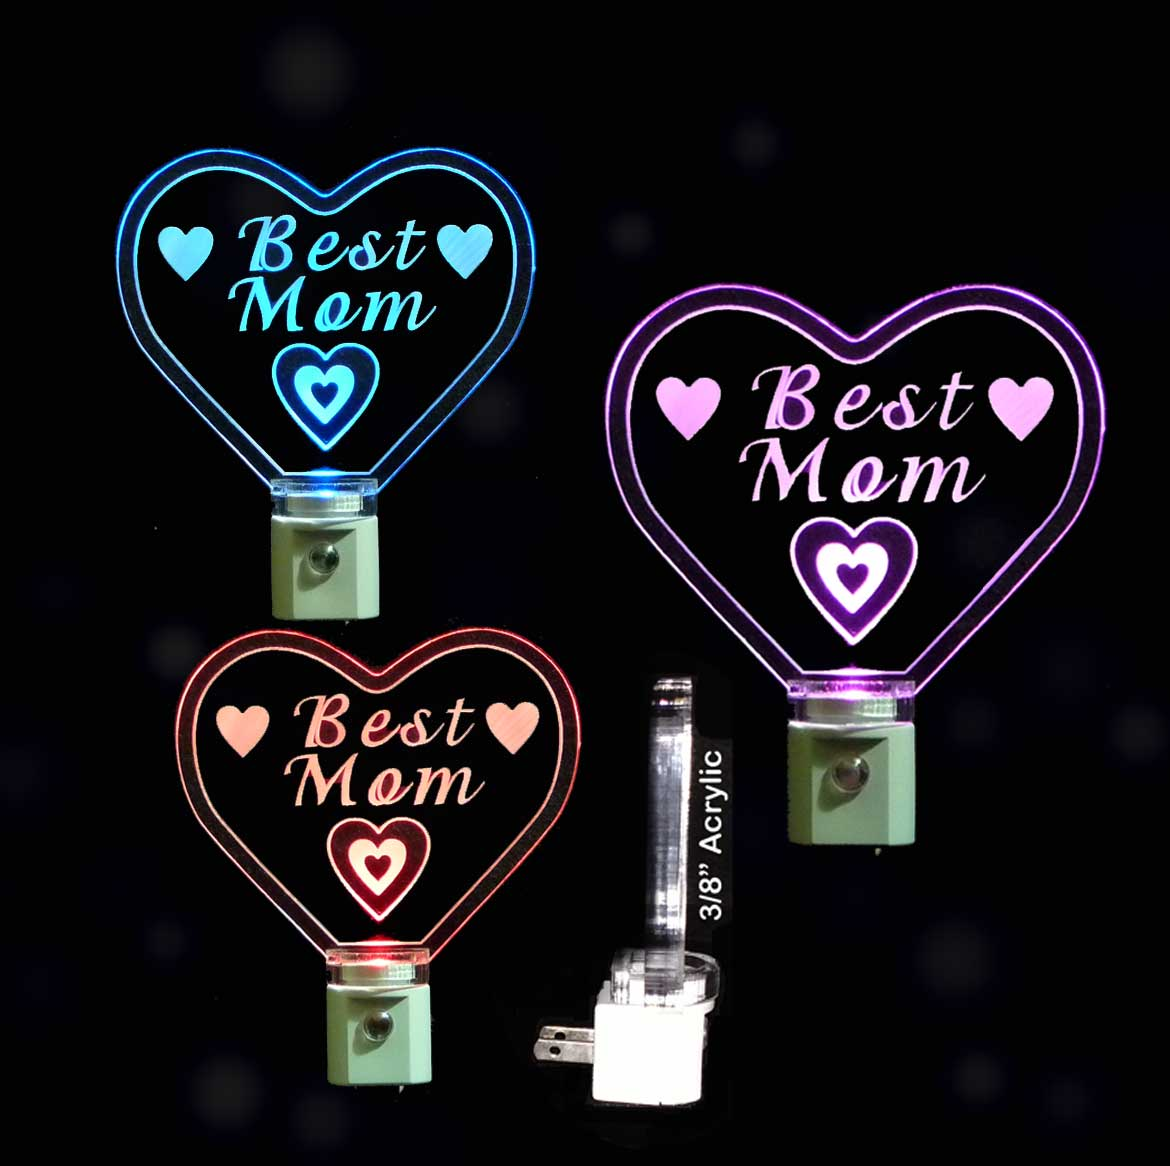 Best Mom Heart LED Night Light